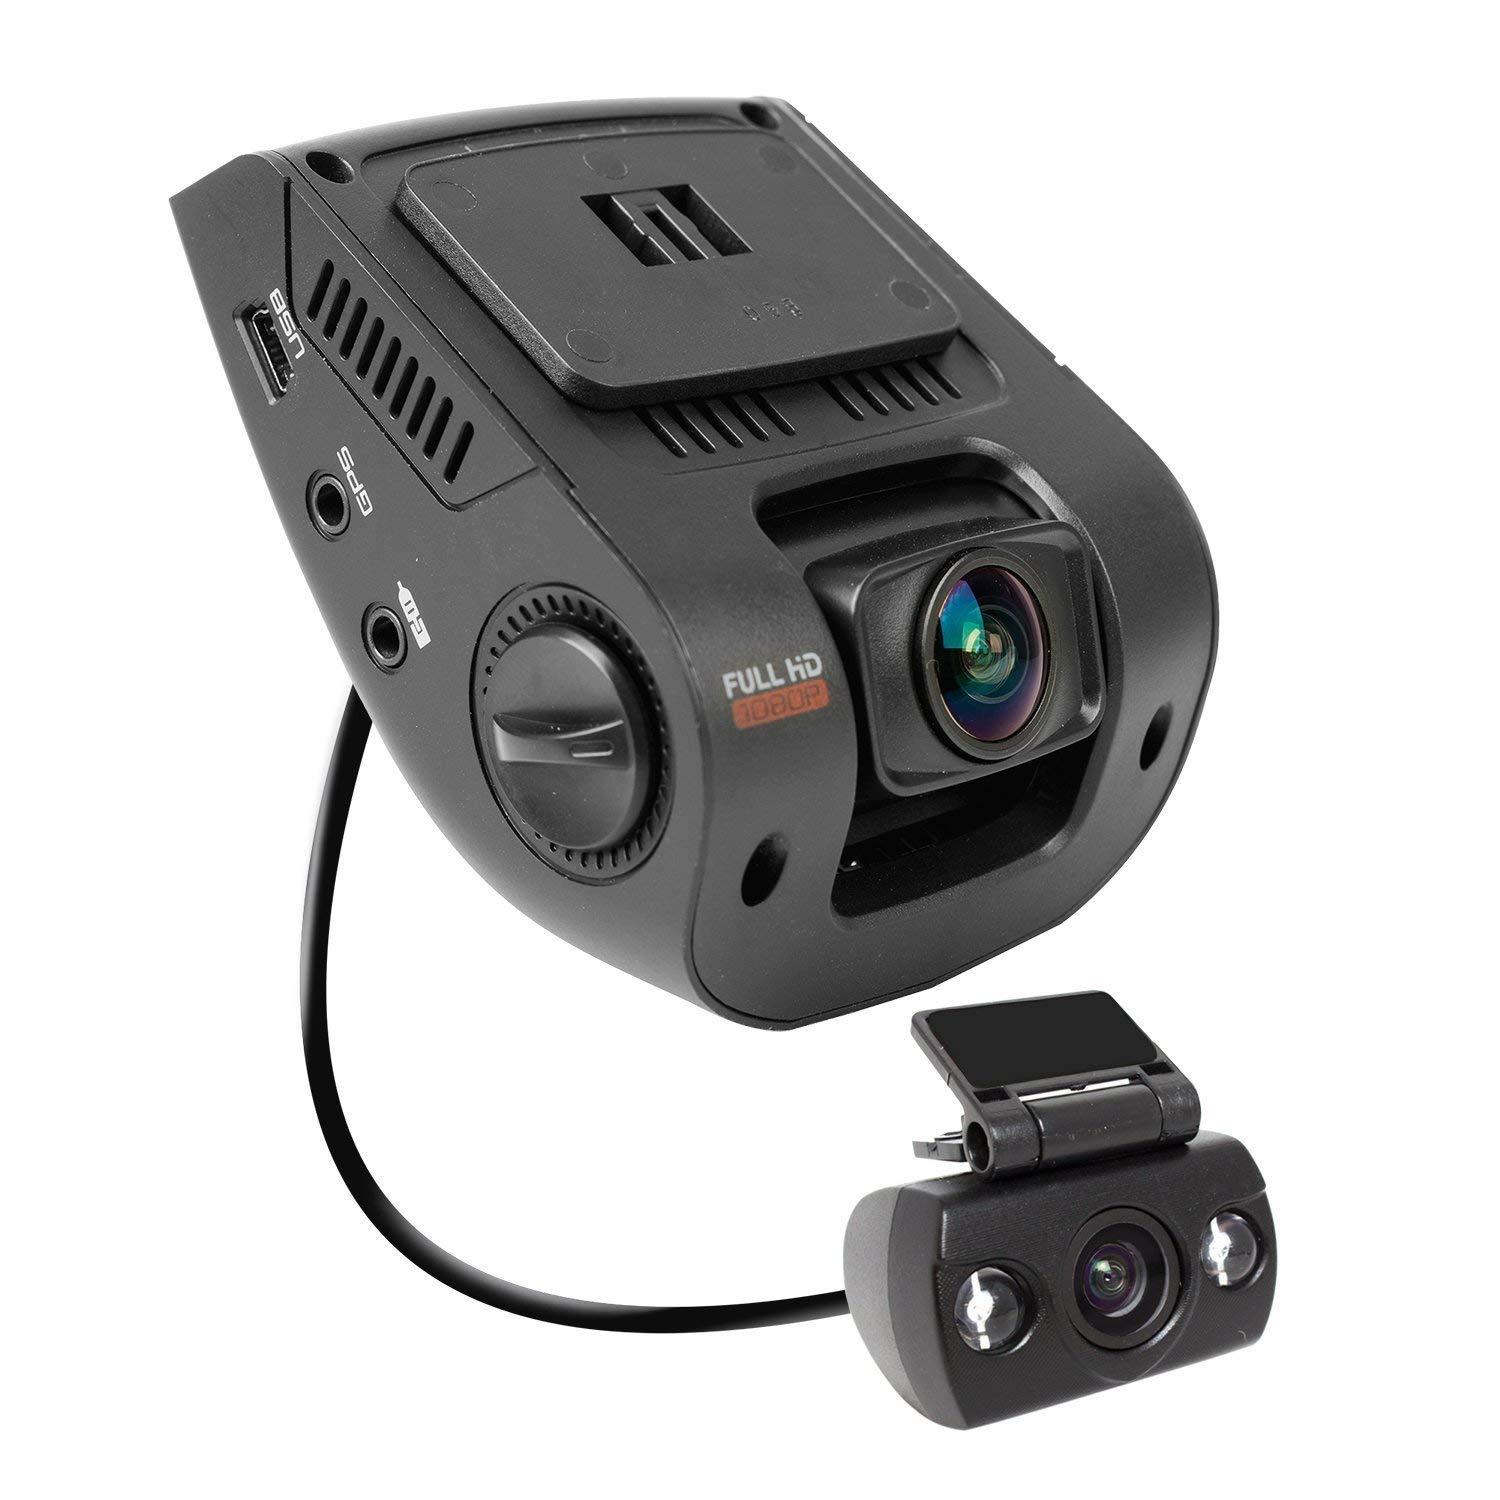 170 Degree Wide Angle Dashboard Camera Recorder 2.4 Inch LCD FHD 1080p